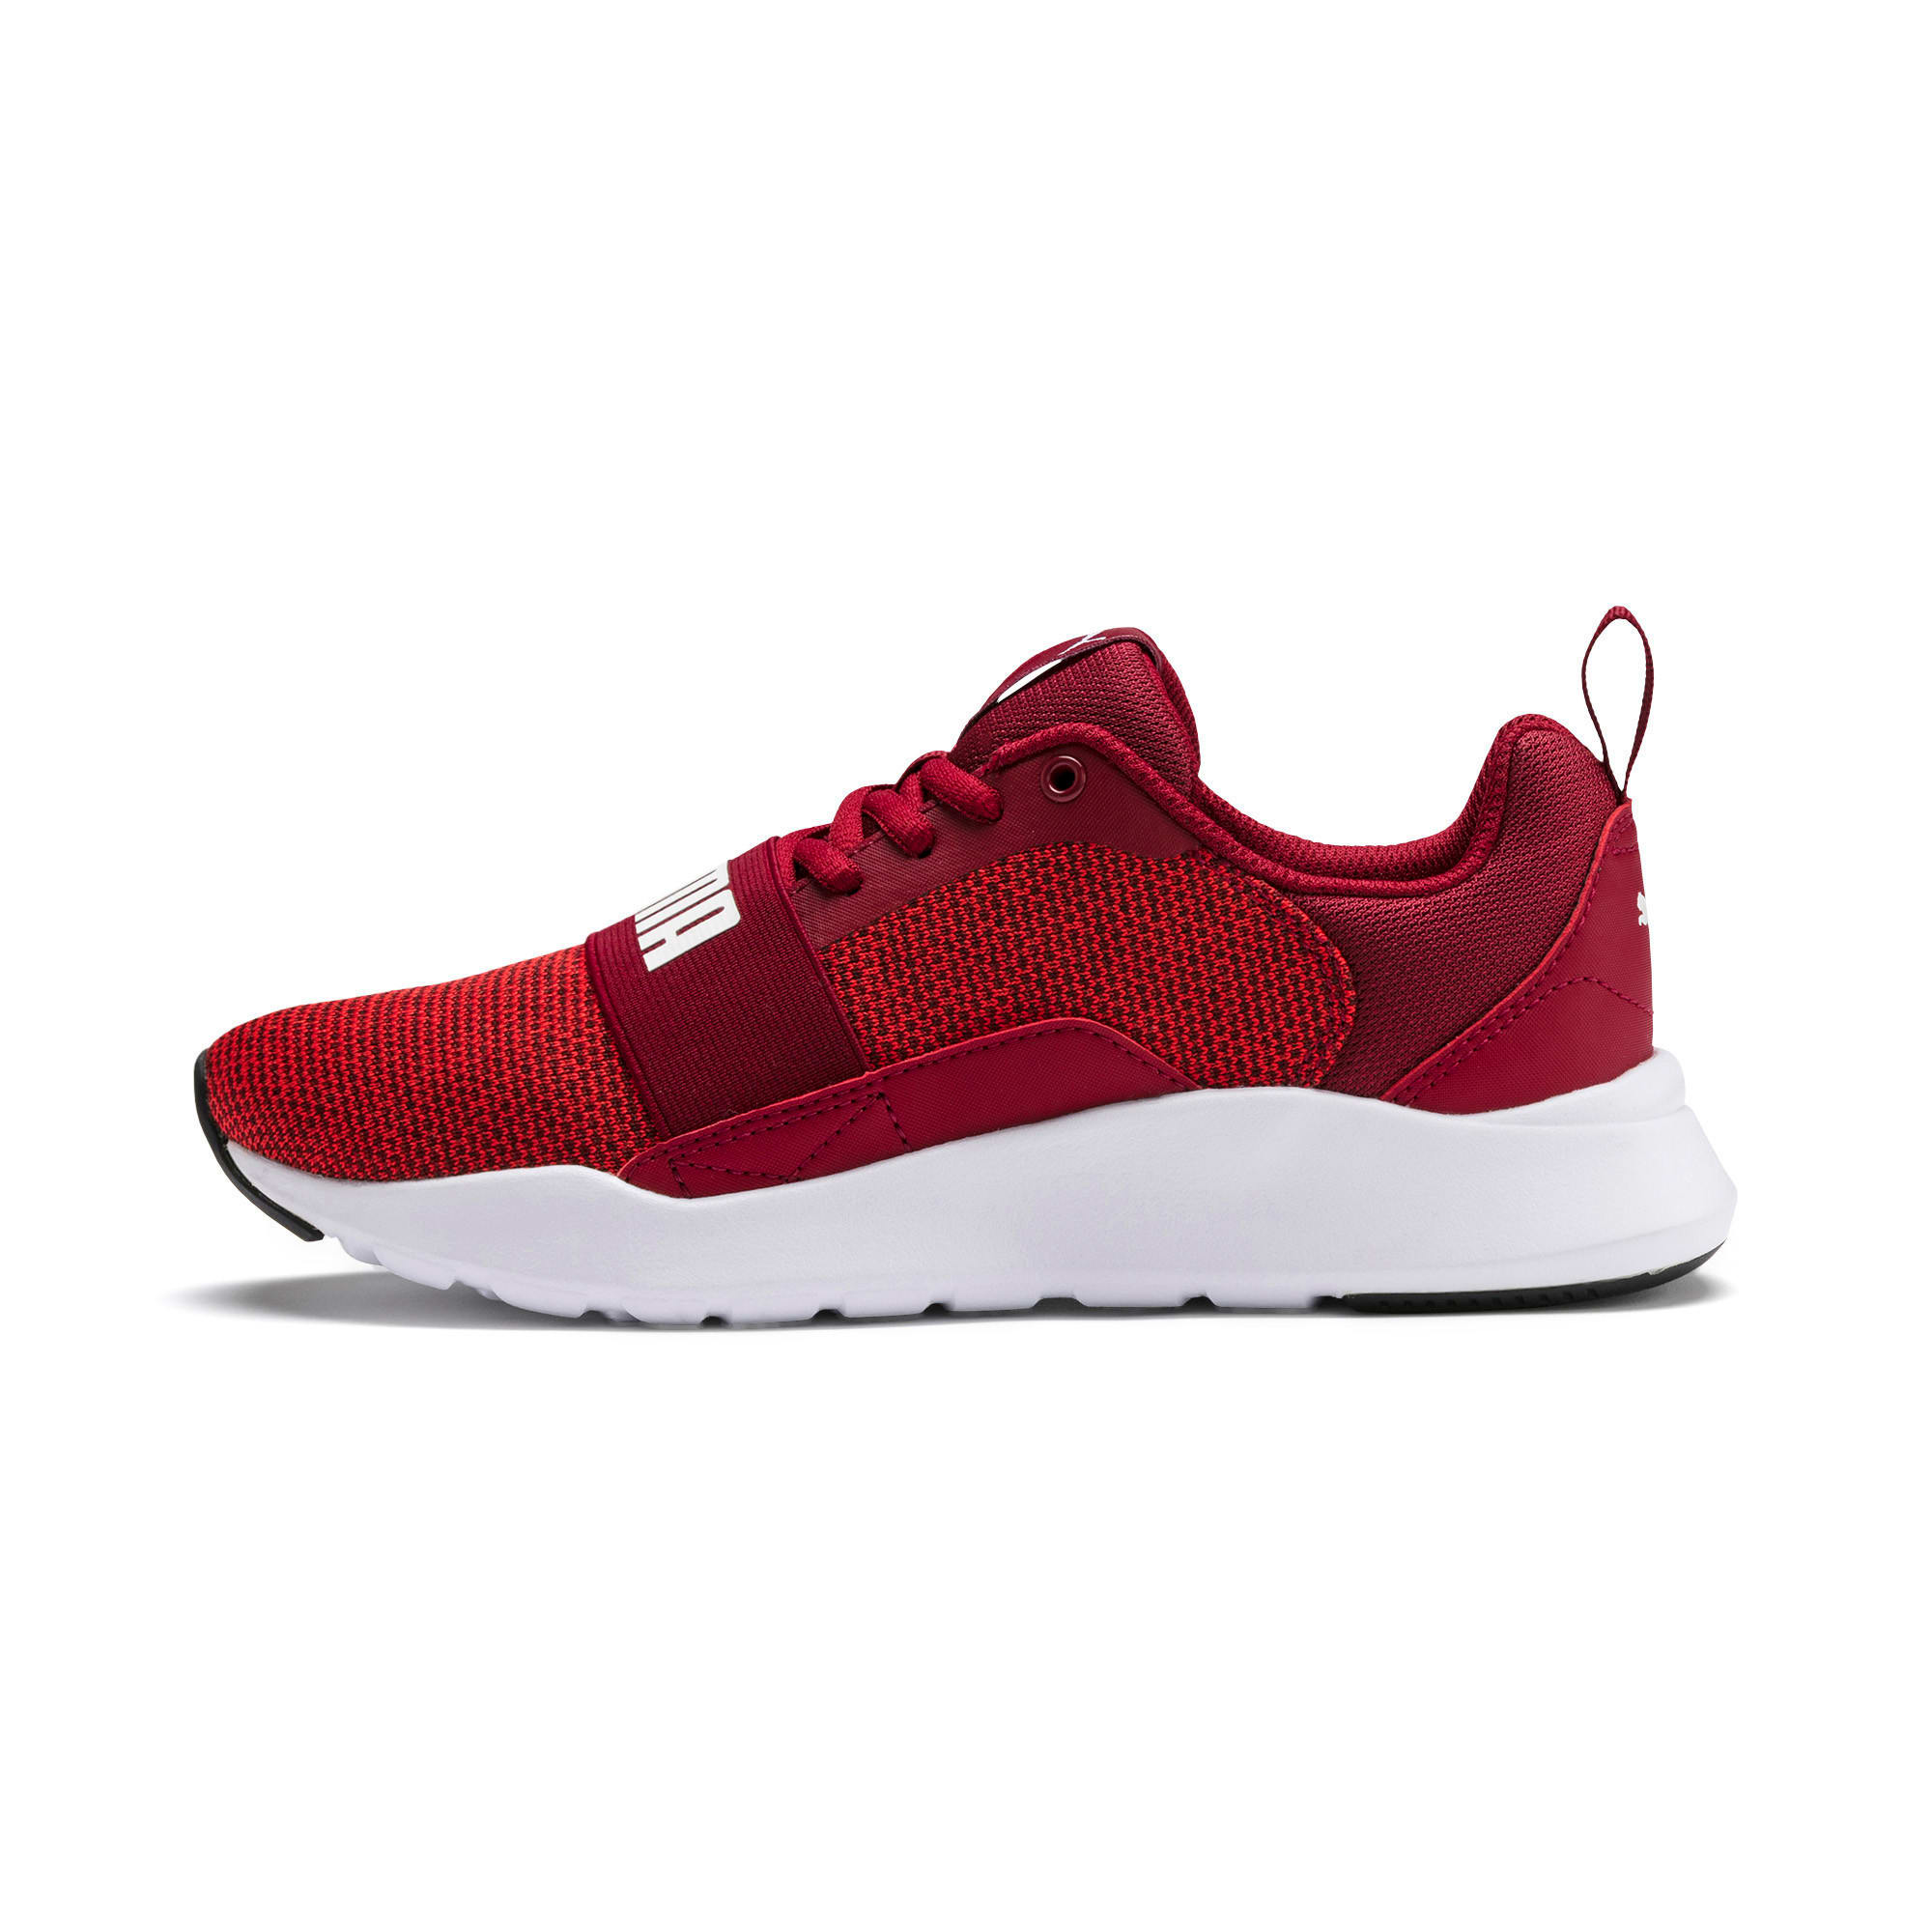 Thumbnail 1 of Wired Knit Youth Trainers, Rhubarb-Puma White, medium-IND